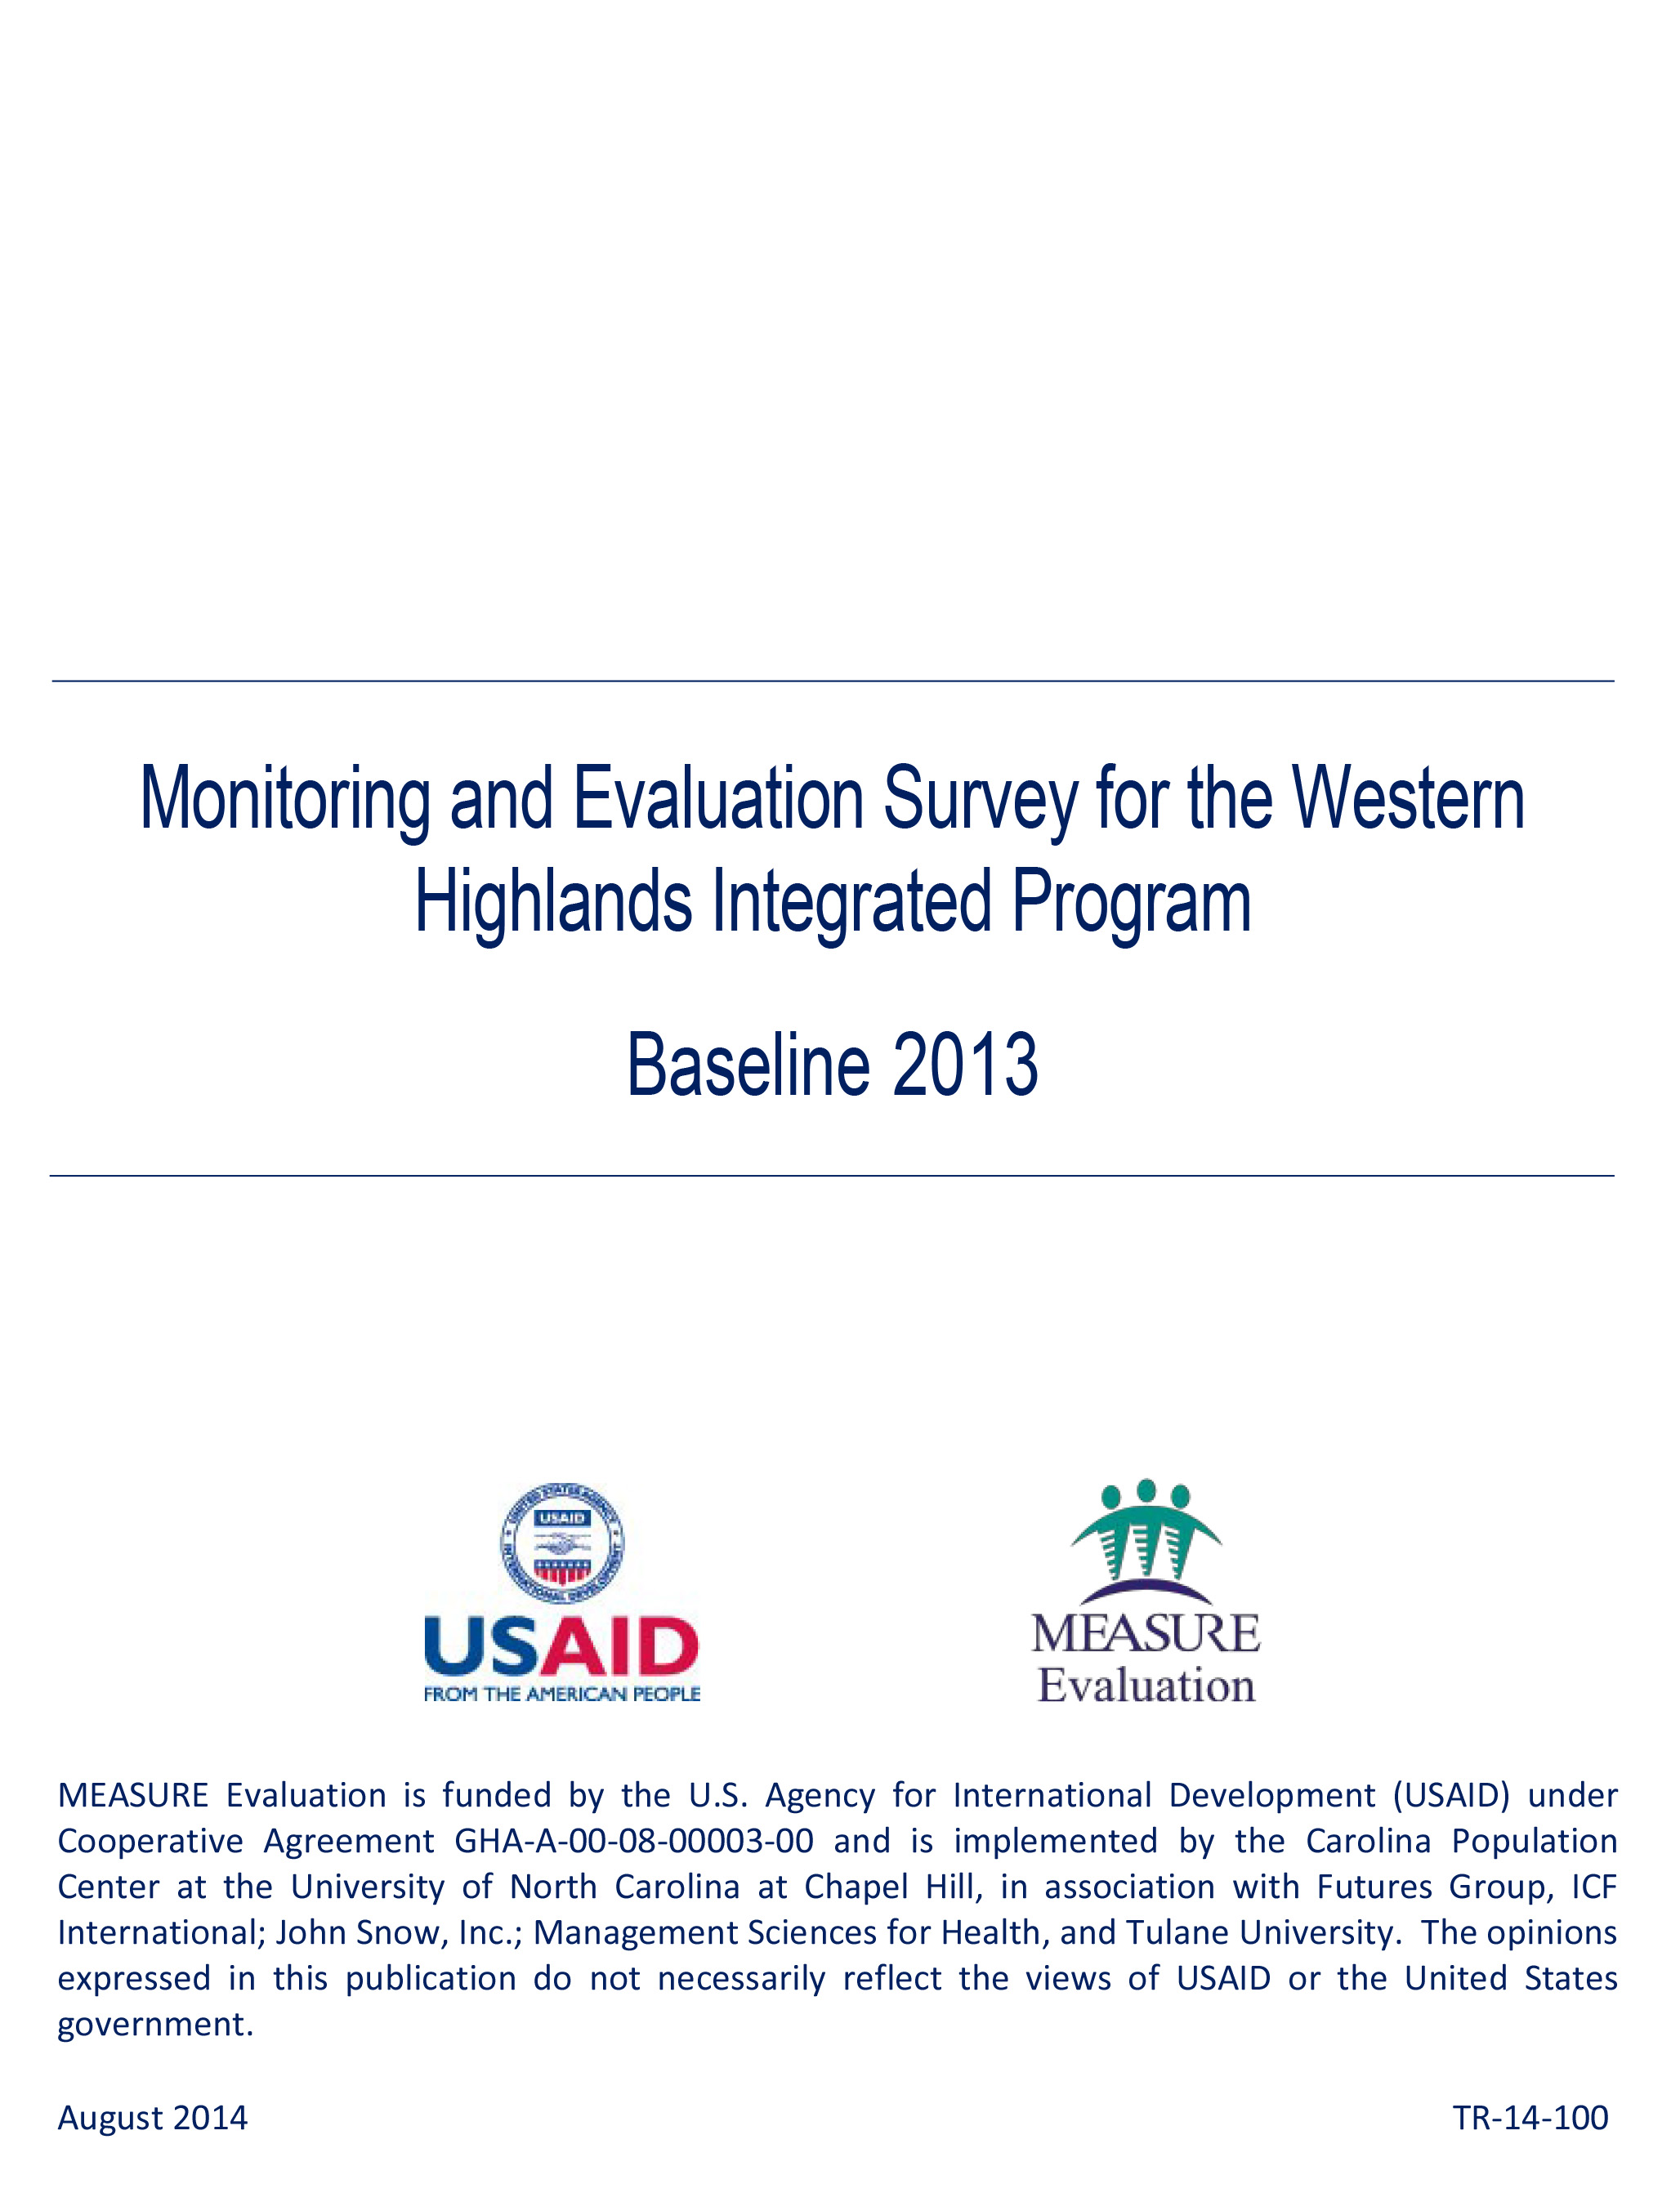 Monitoring and Evaluation Survey for the Western Highlands Integrated Program